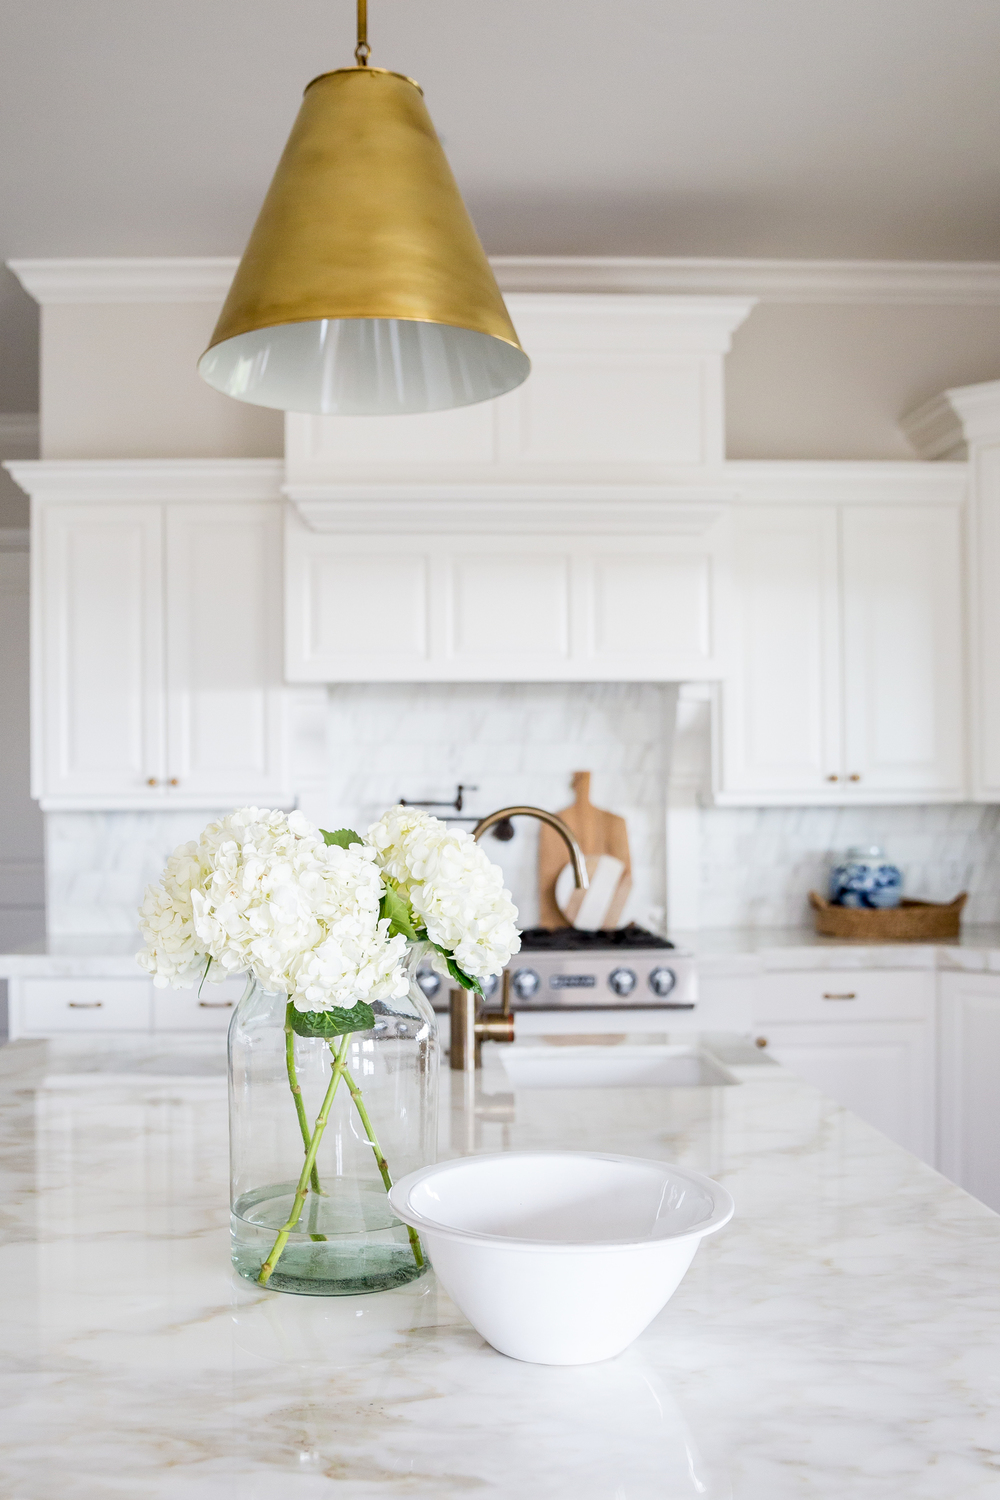 Gold light pendant above kitchen island